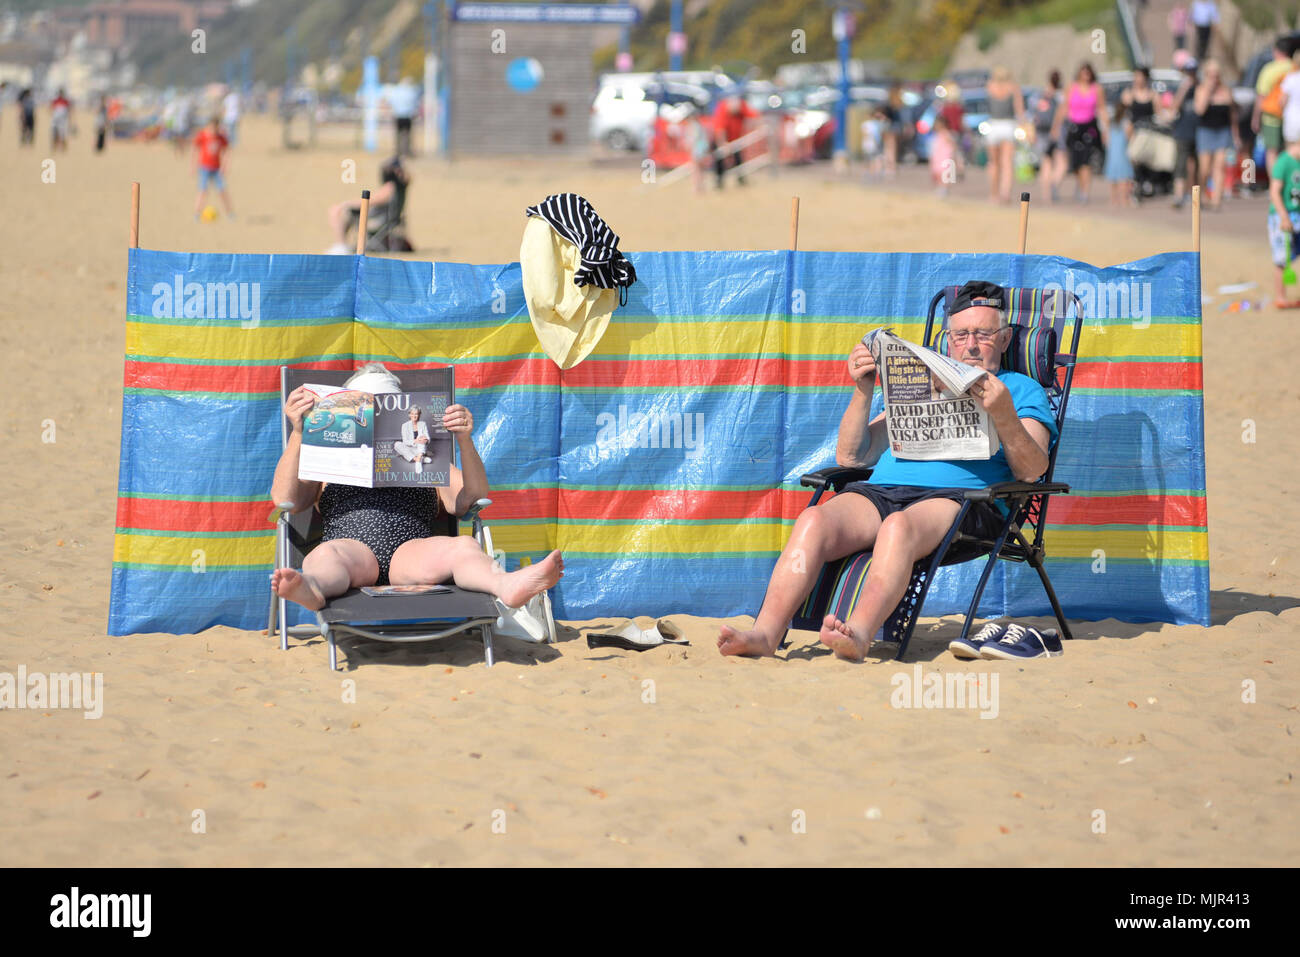 Boscombe, Bournemouth, Dorset, UK, 6th May 2018: Couple sitting on chairs with their feet up reading newspapers and relaxing on the beach in hot sunshine protected by a wind break. Hottest Mayday bank holiday weekend on record. Alamy News - Stock Image